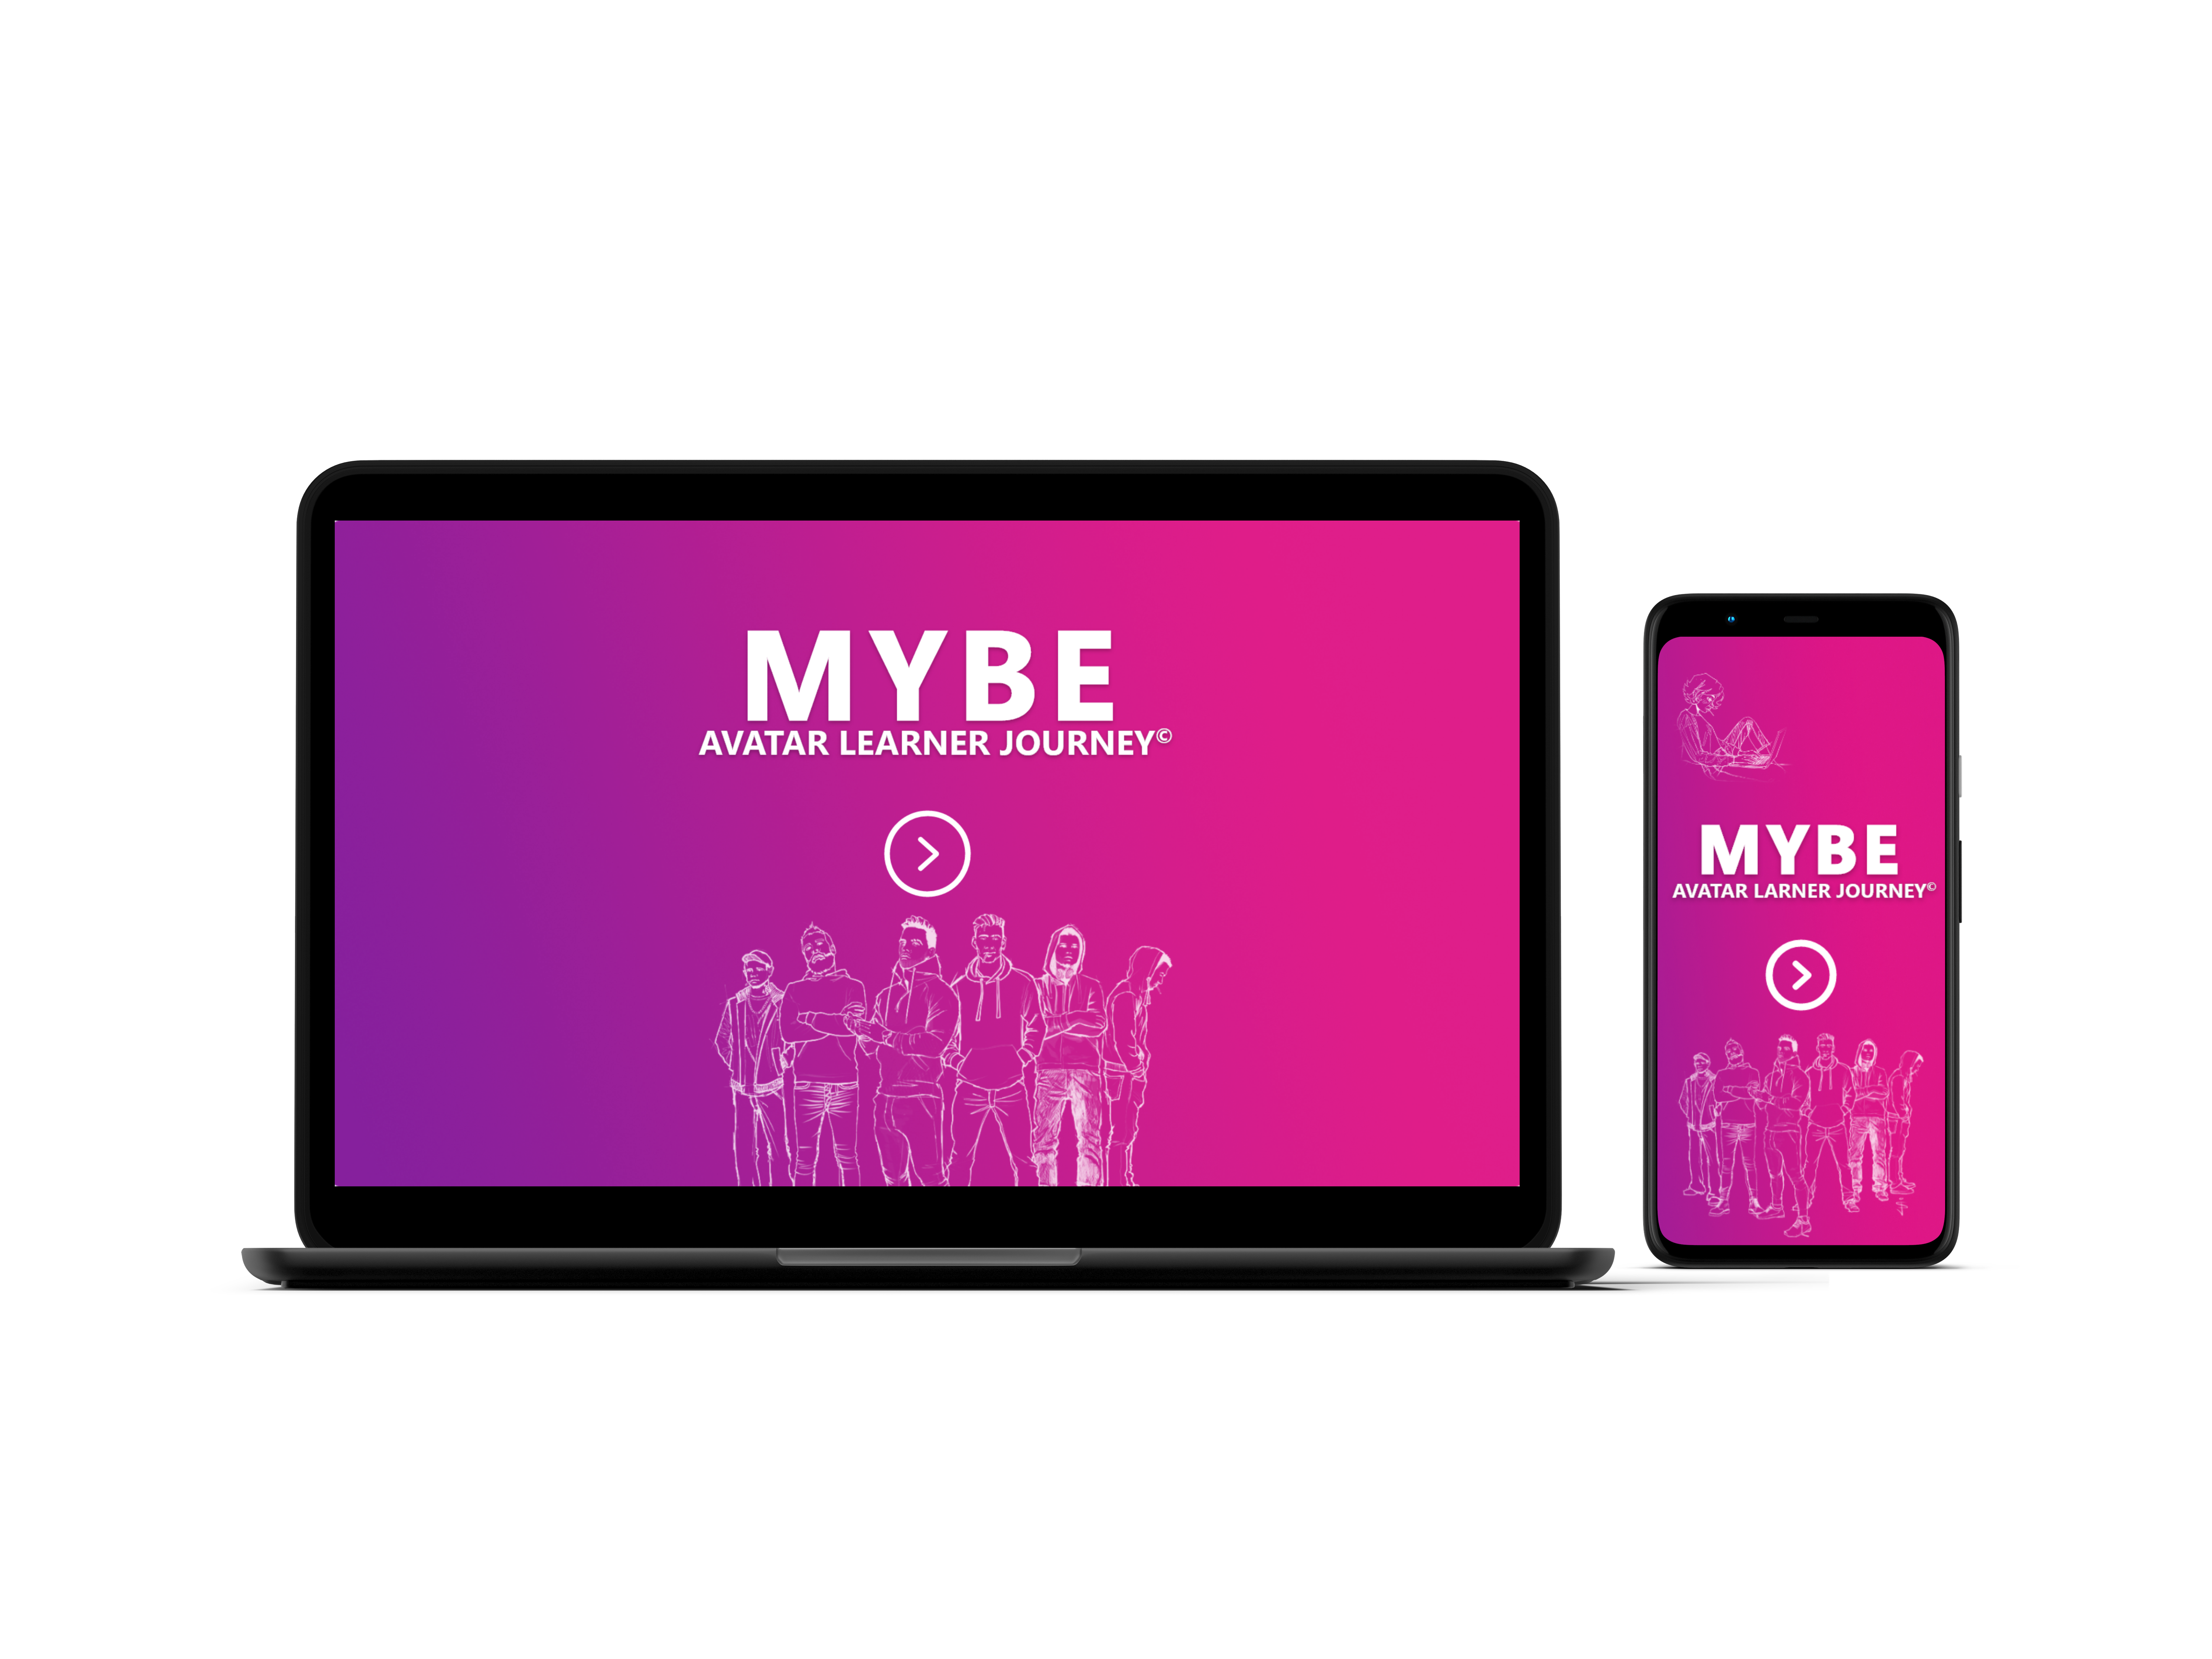 MYBE Avatar Learner Journey on laptop and mobile